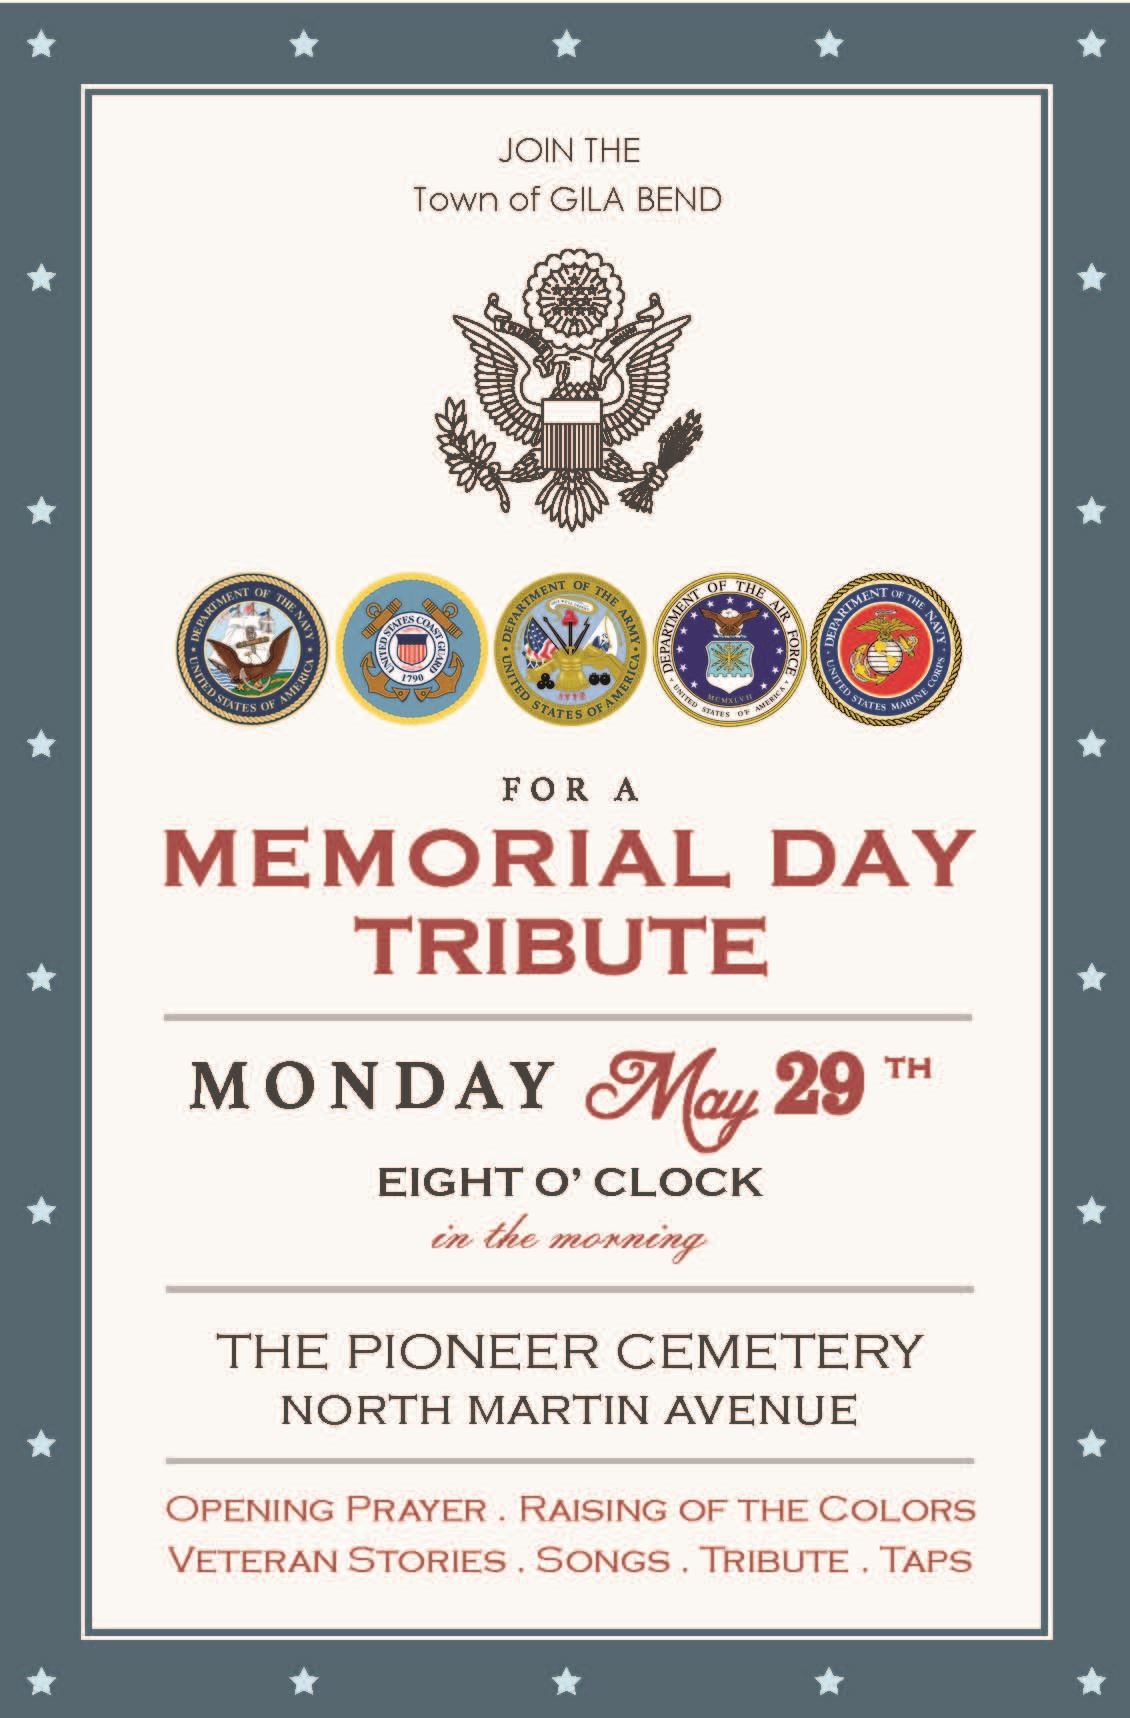 Memorial Day Tribute Invitation to Public